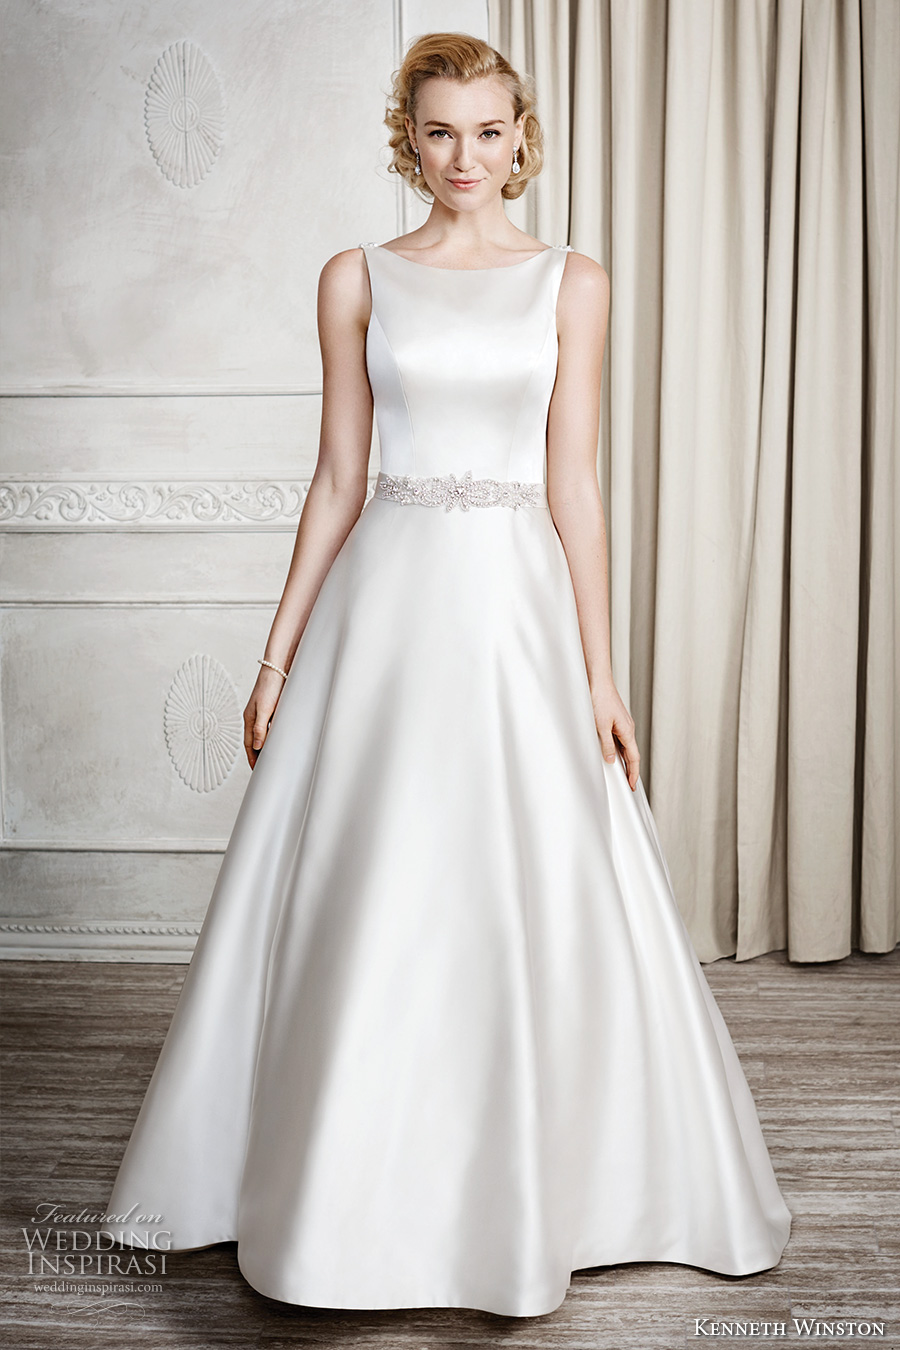 Kenneth winston fall 2016 wedding dresses wedding inspirasi for Dresses for a fall wedding